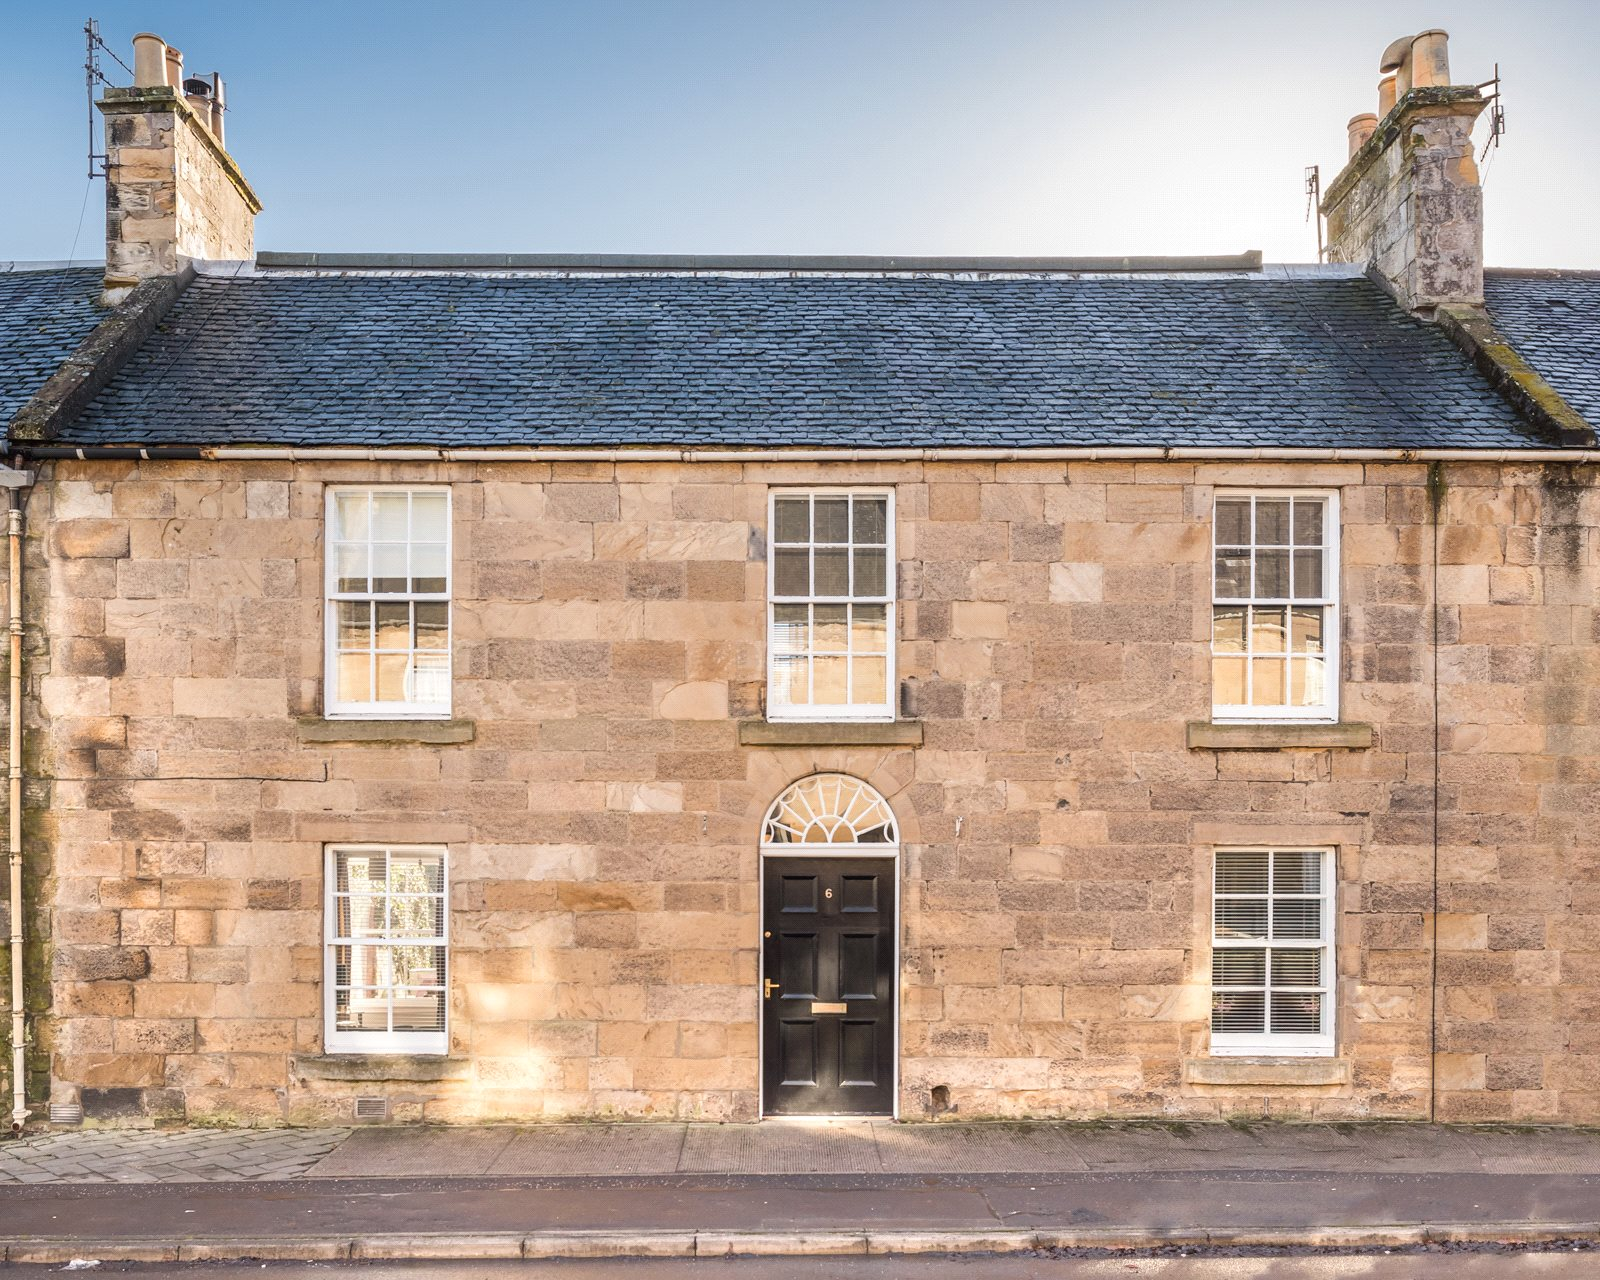 5 Bedrooms Terraced House for sale in 6 The Barony, Millgate, Cupar, Fife, KY15